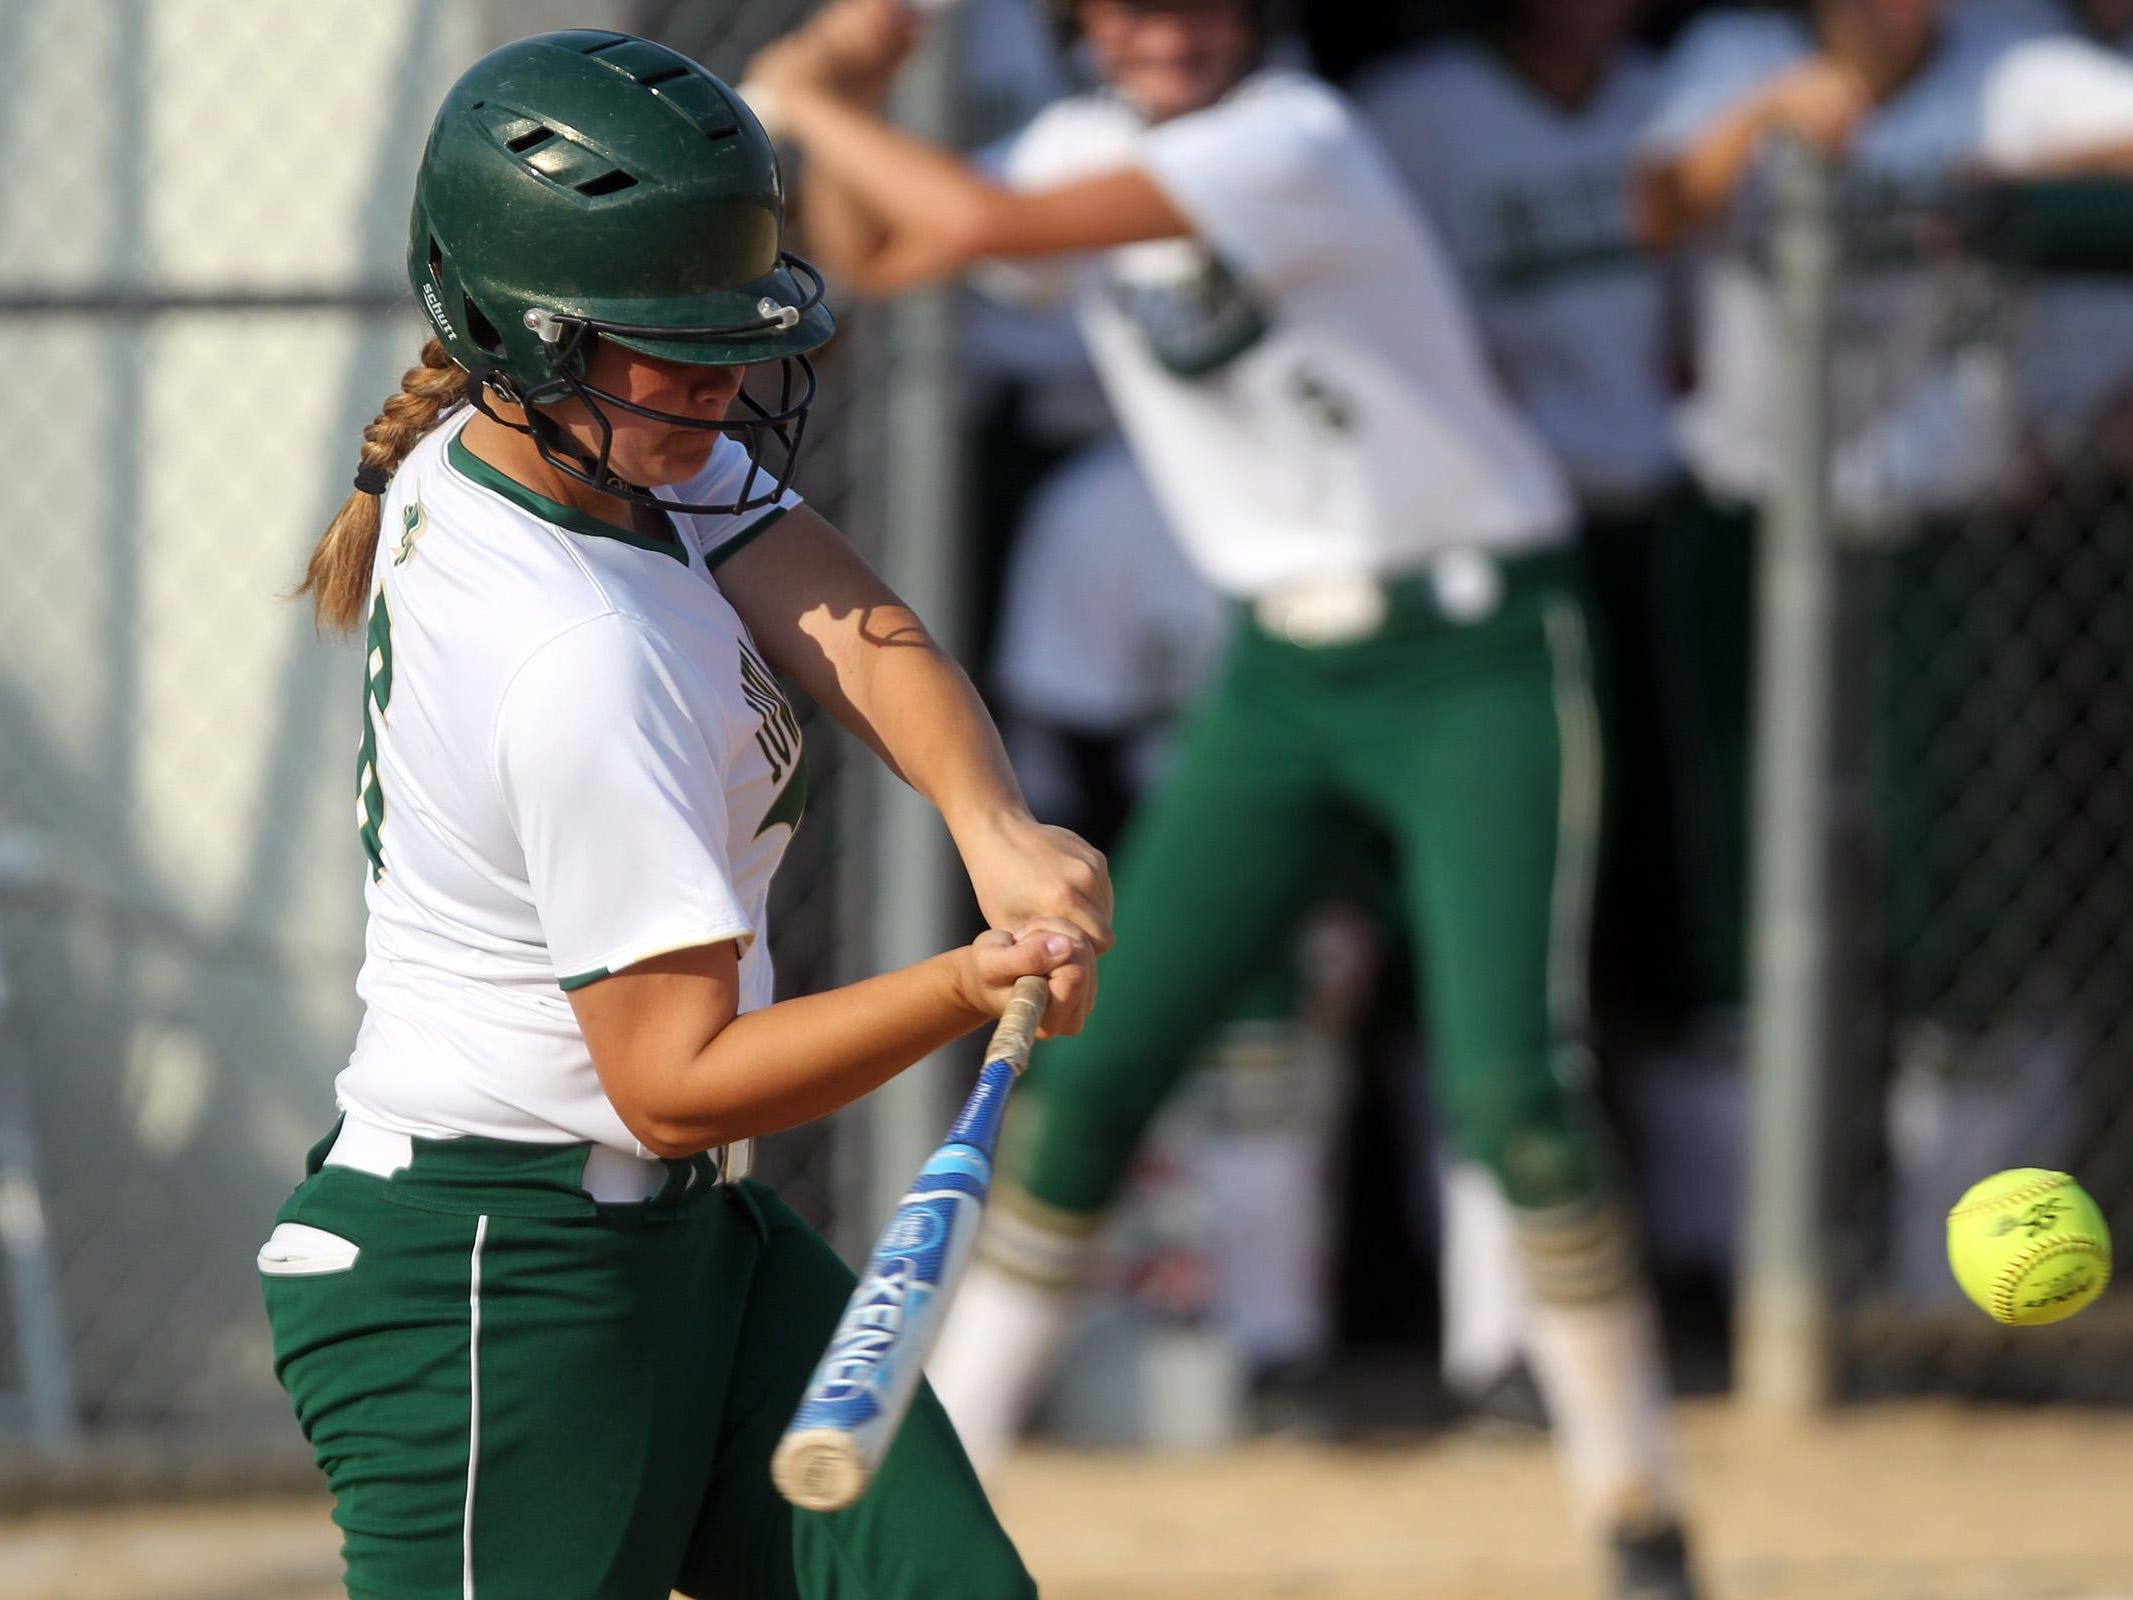 West High's Taylor Libby hits a home run during the Women of Troy's game against Linn-Mar on Thursday, July 9, 2015. David Scrivner / Iowa City Press-Citizen